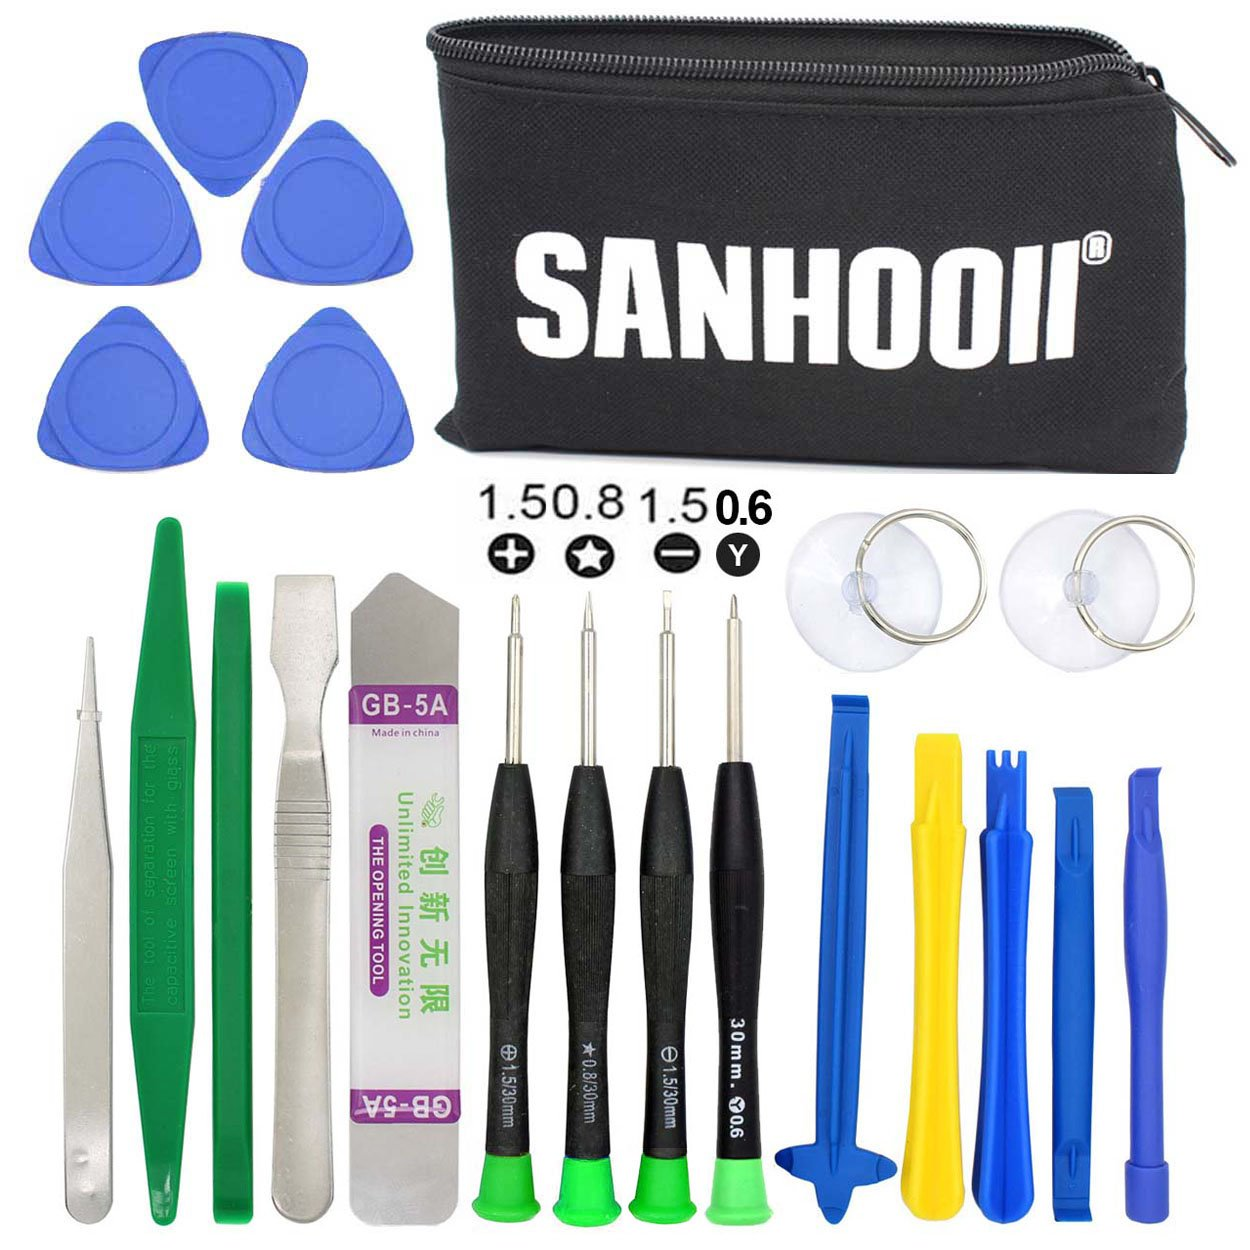 SANHOOII 21 in 1 Phone Repair Tools, Phone Opening Pry Tool Screwdriver Set Compatible with iPhone 6/6s/7/7Plus/8/8Plus/X, iPad, Watch, iPod, iTouch, Smartphone Sanhooii Ecommerce Co. Ltd. PA264